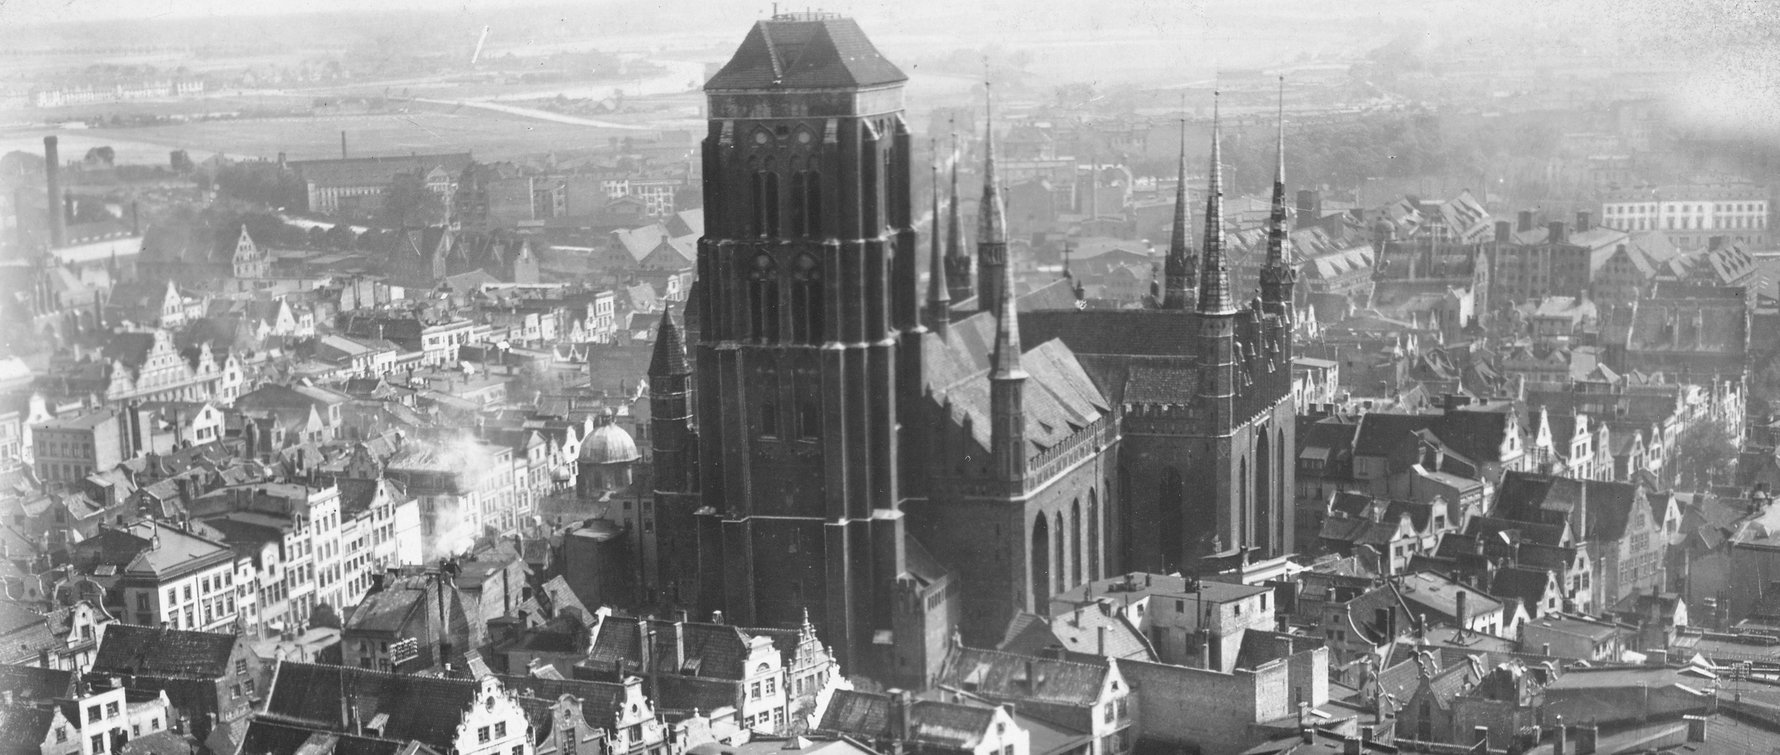 Marienkirche in Danzig (St. Mary's Church, Gdańsk), 1920